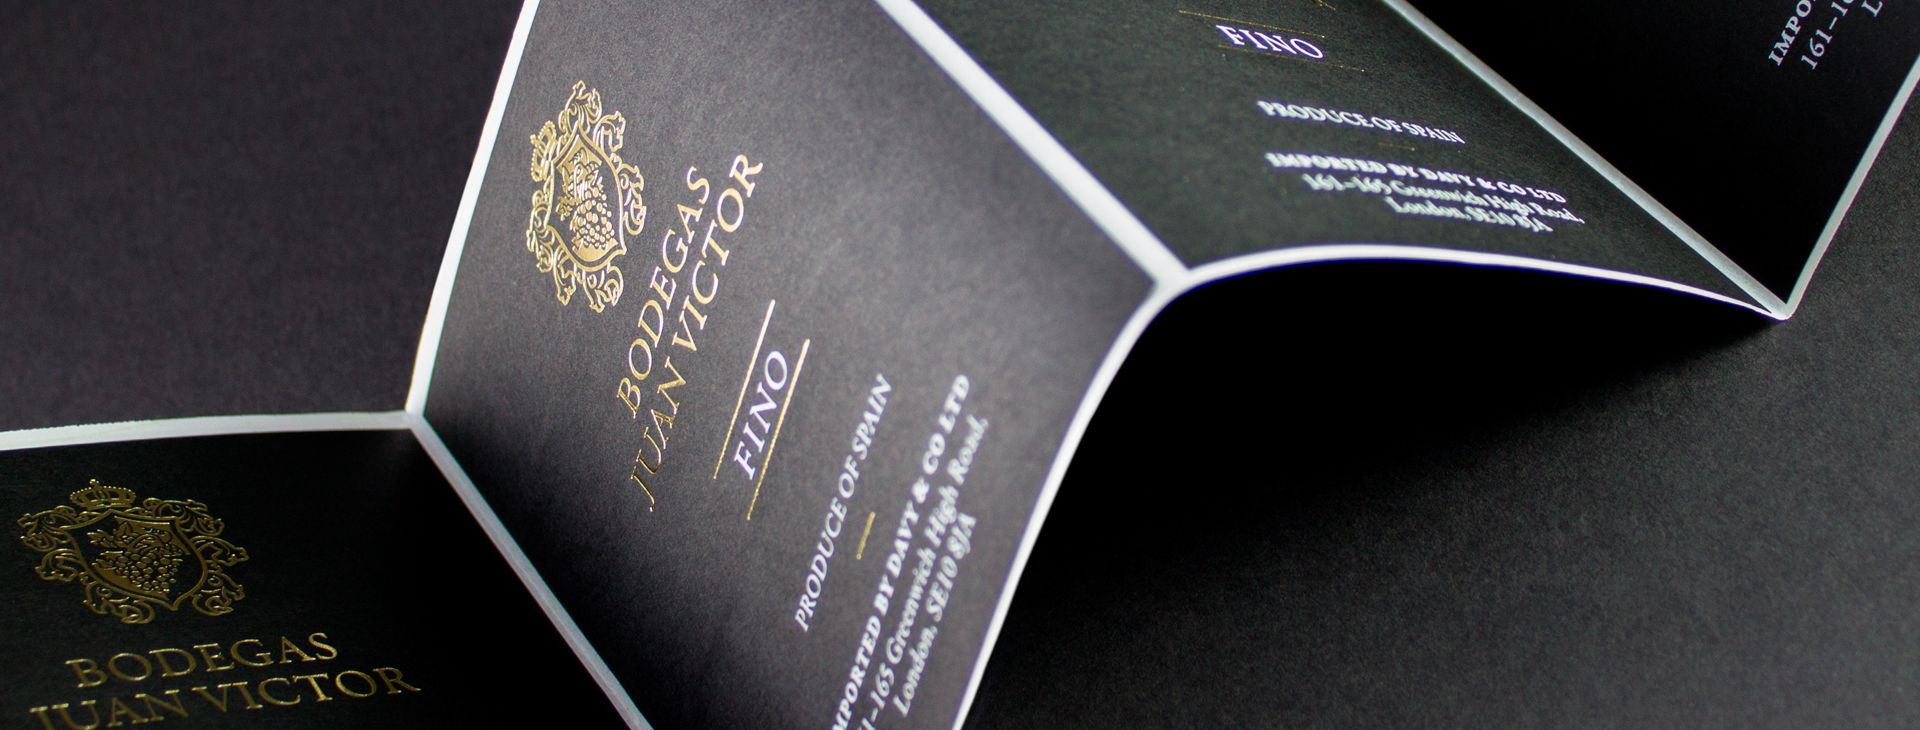 Wine label design and print